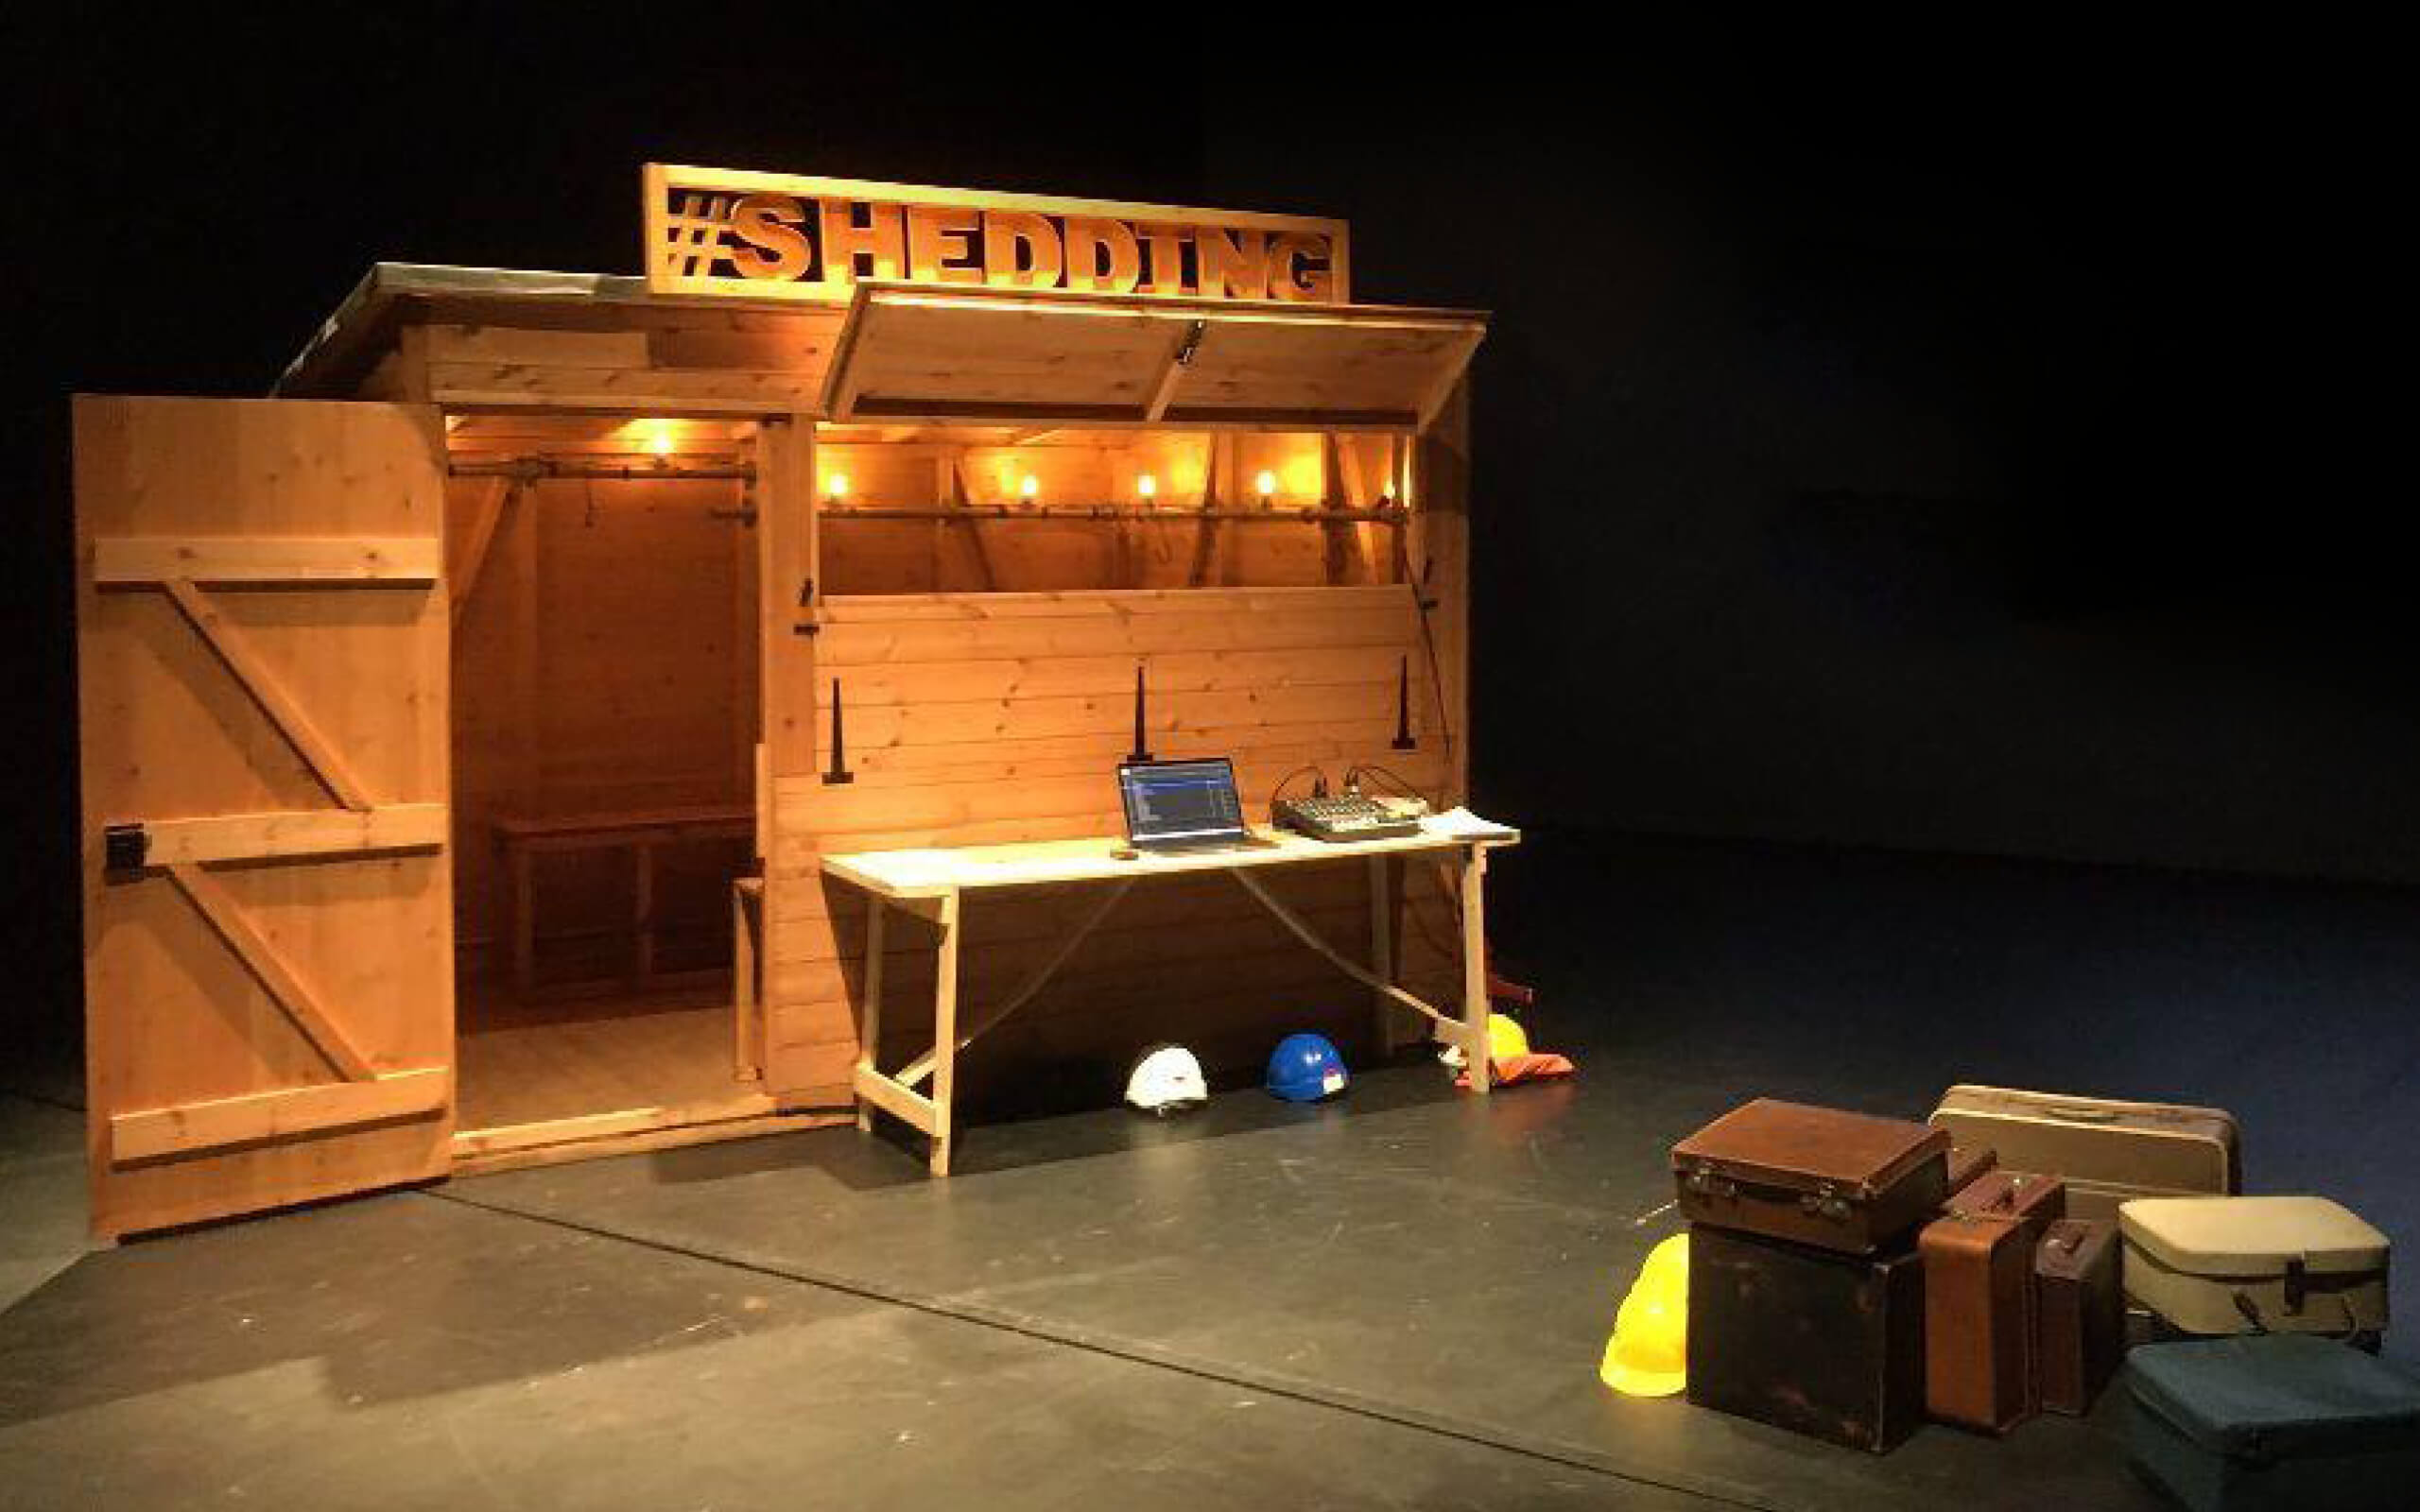 A Picture of the wooden SHED